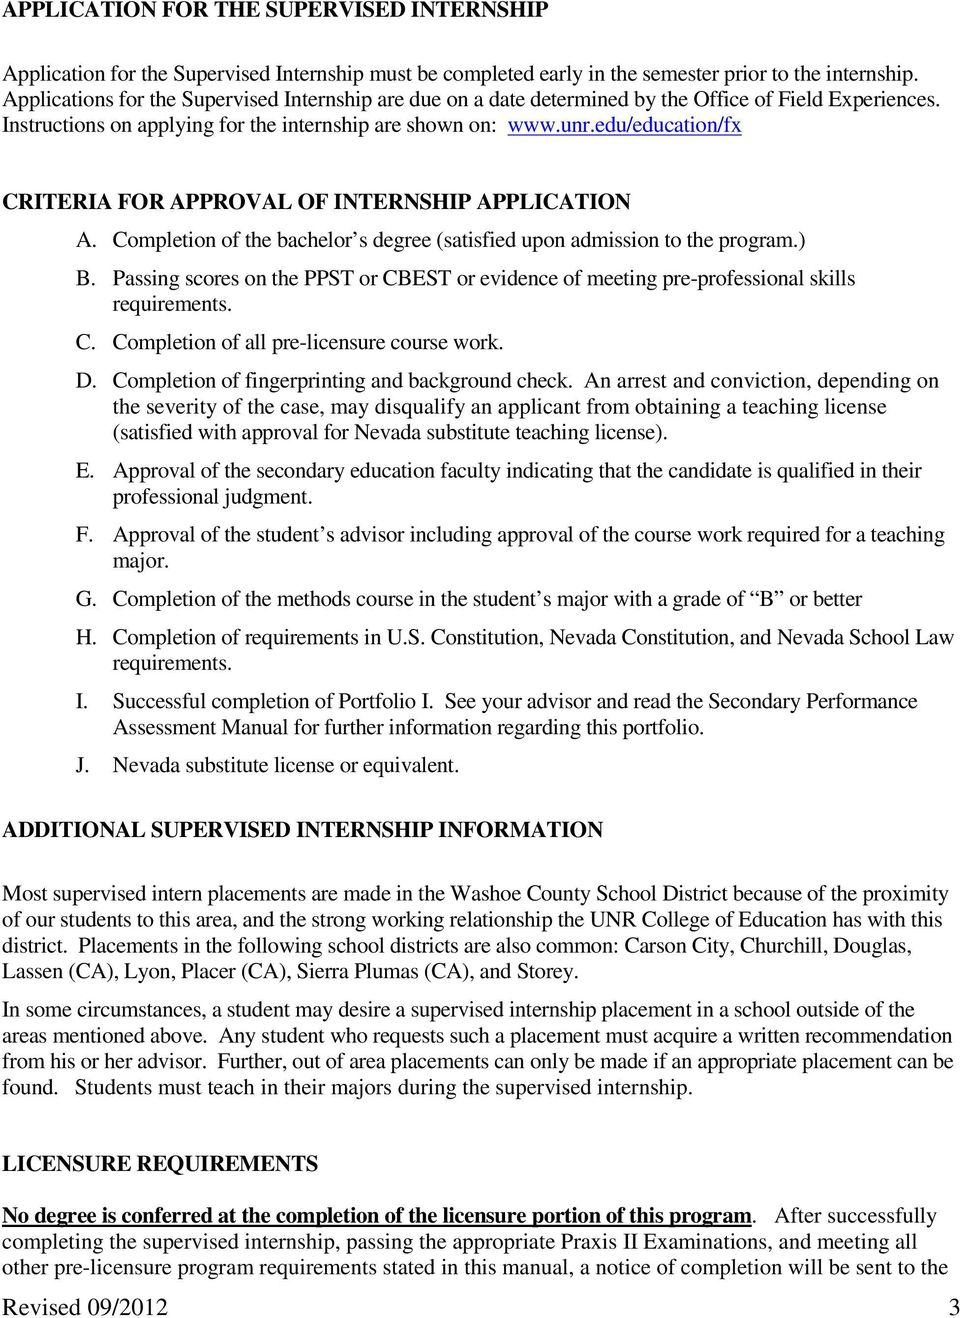 edu/education/fx CRITERIA F APPROVAL OF INTERNSHIP APPLICATION A. Completion of the bachelor s degree (satisfied upon admission to the program.) B.